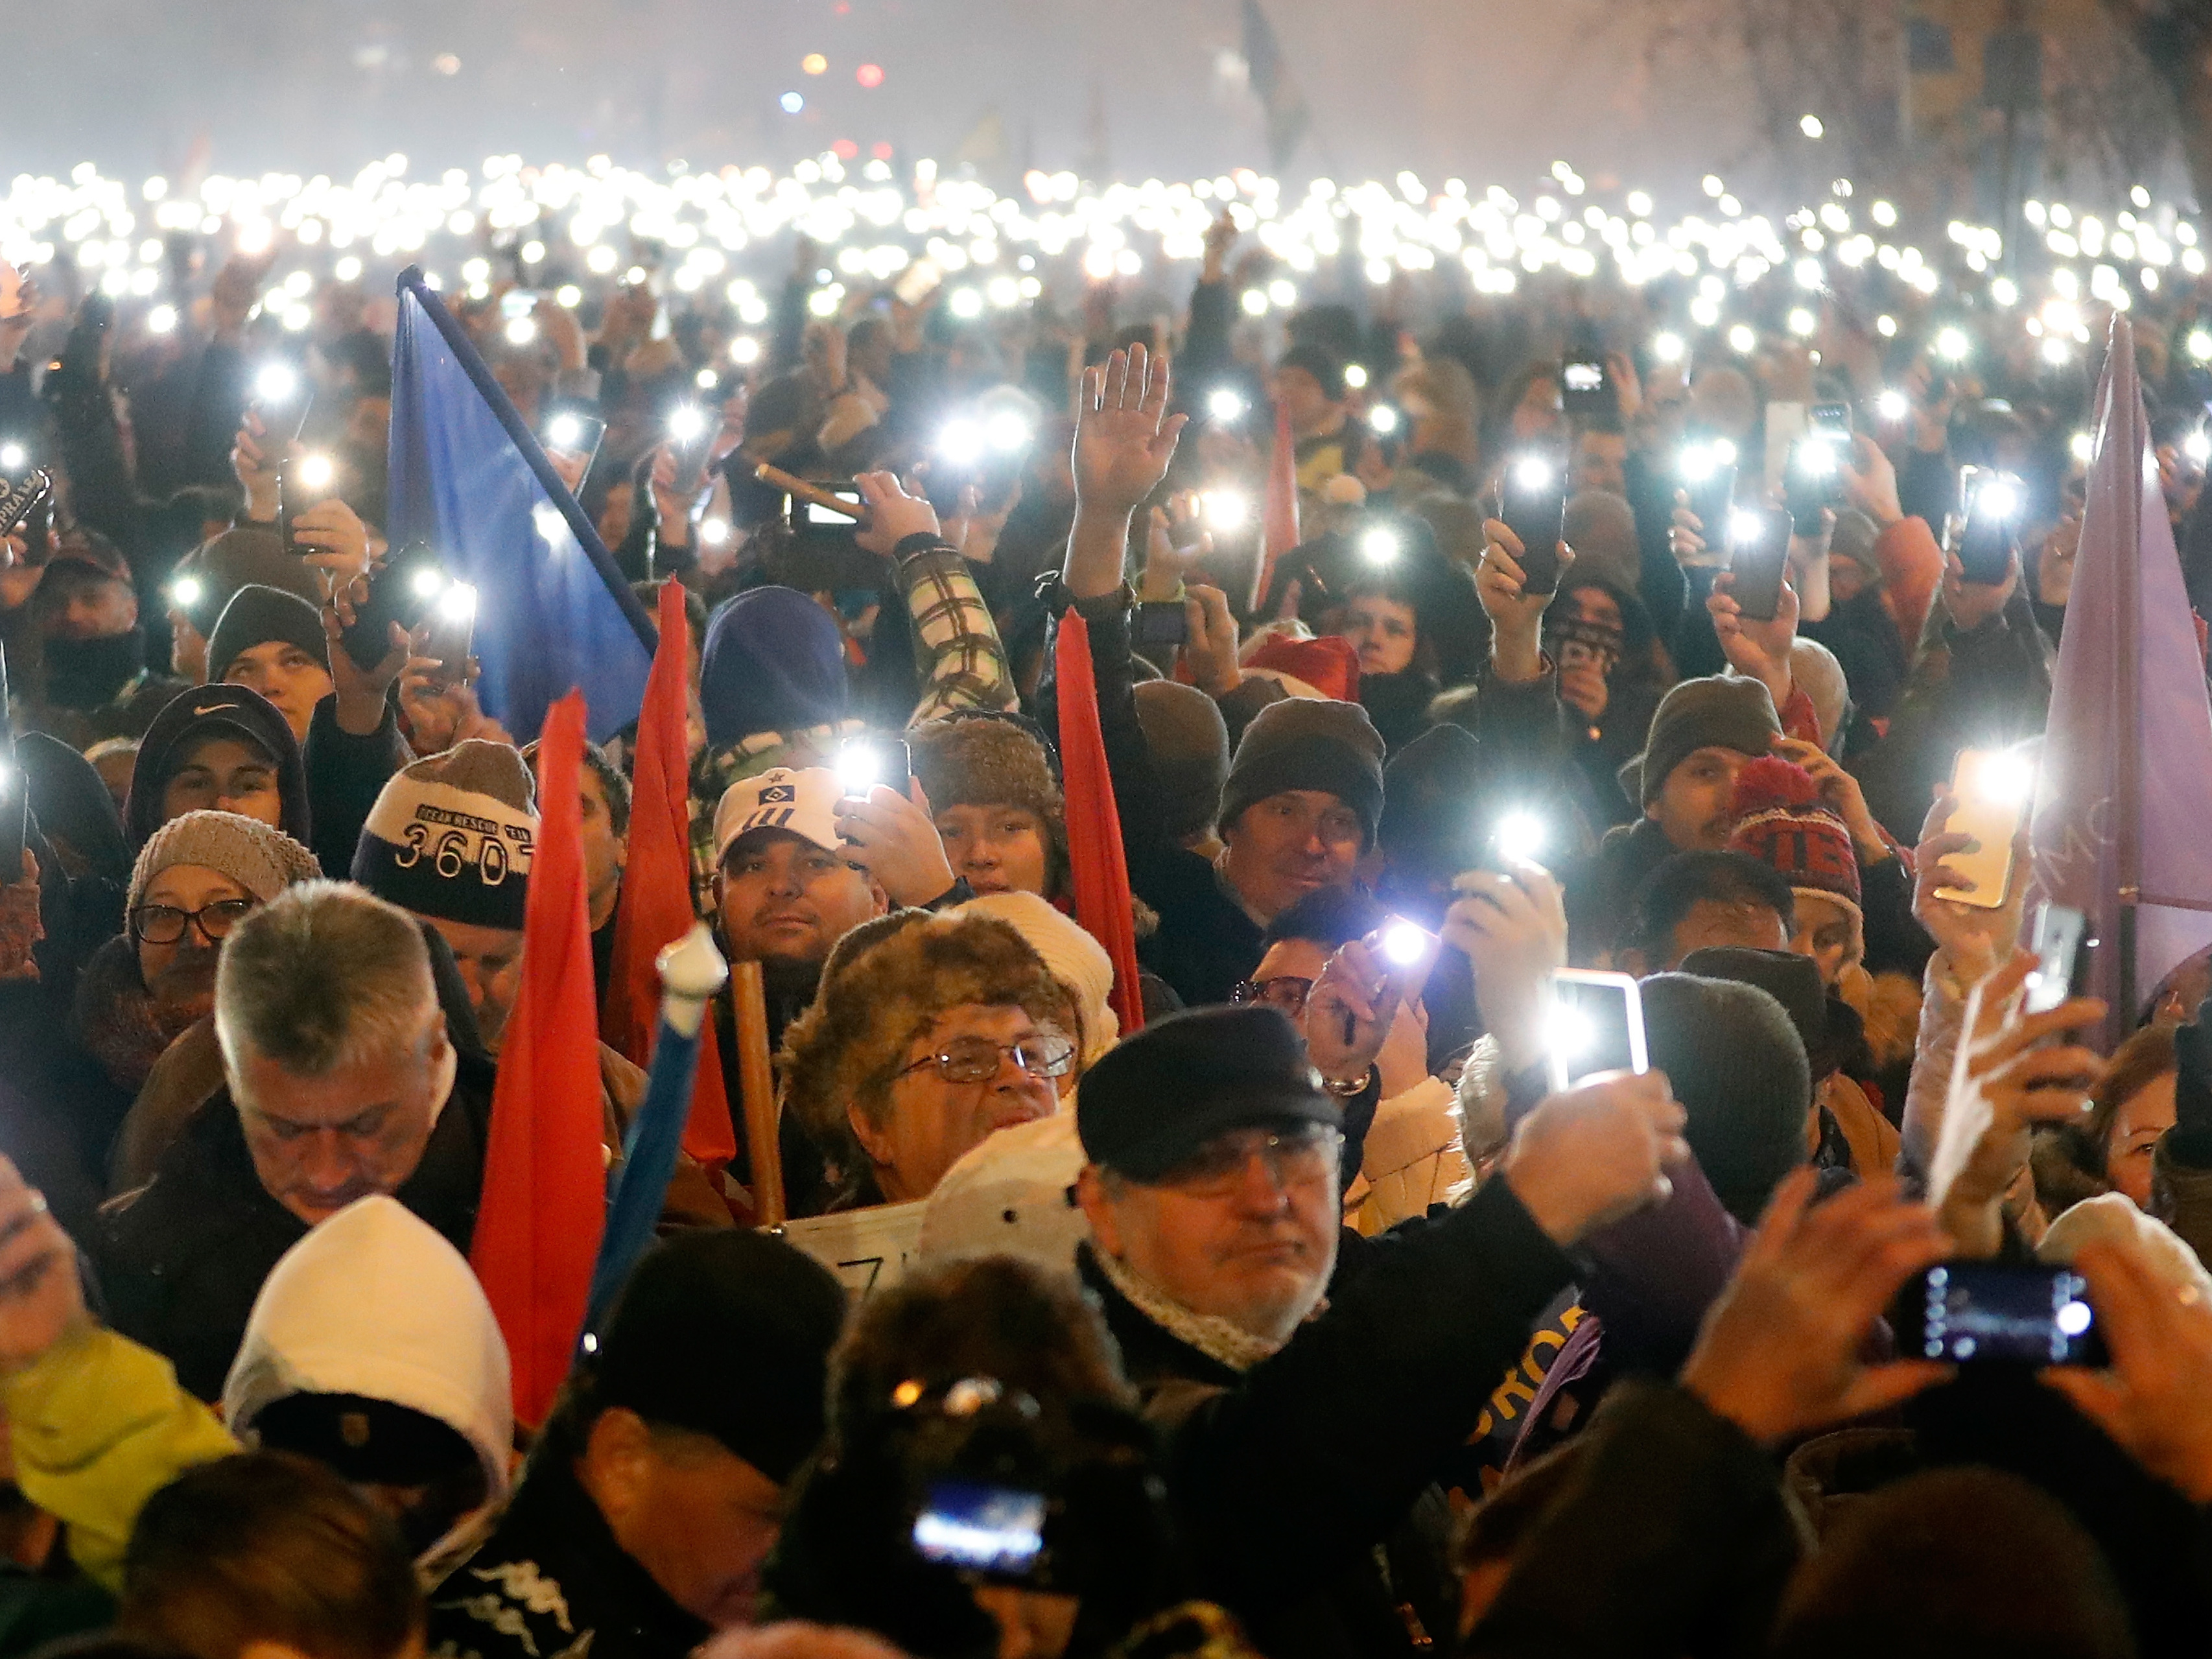 Demonstrators protesting against recent legislative measures introduced by the government of Hungarian Prime Minister Viktor Orbán stand outside parliament on Dec. 16, 2018 in Budapest, Hungary.